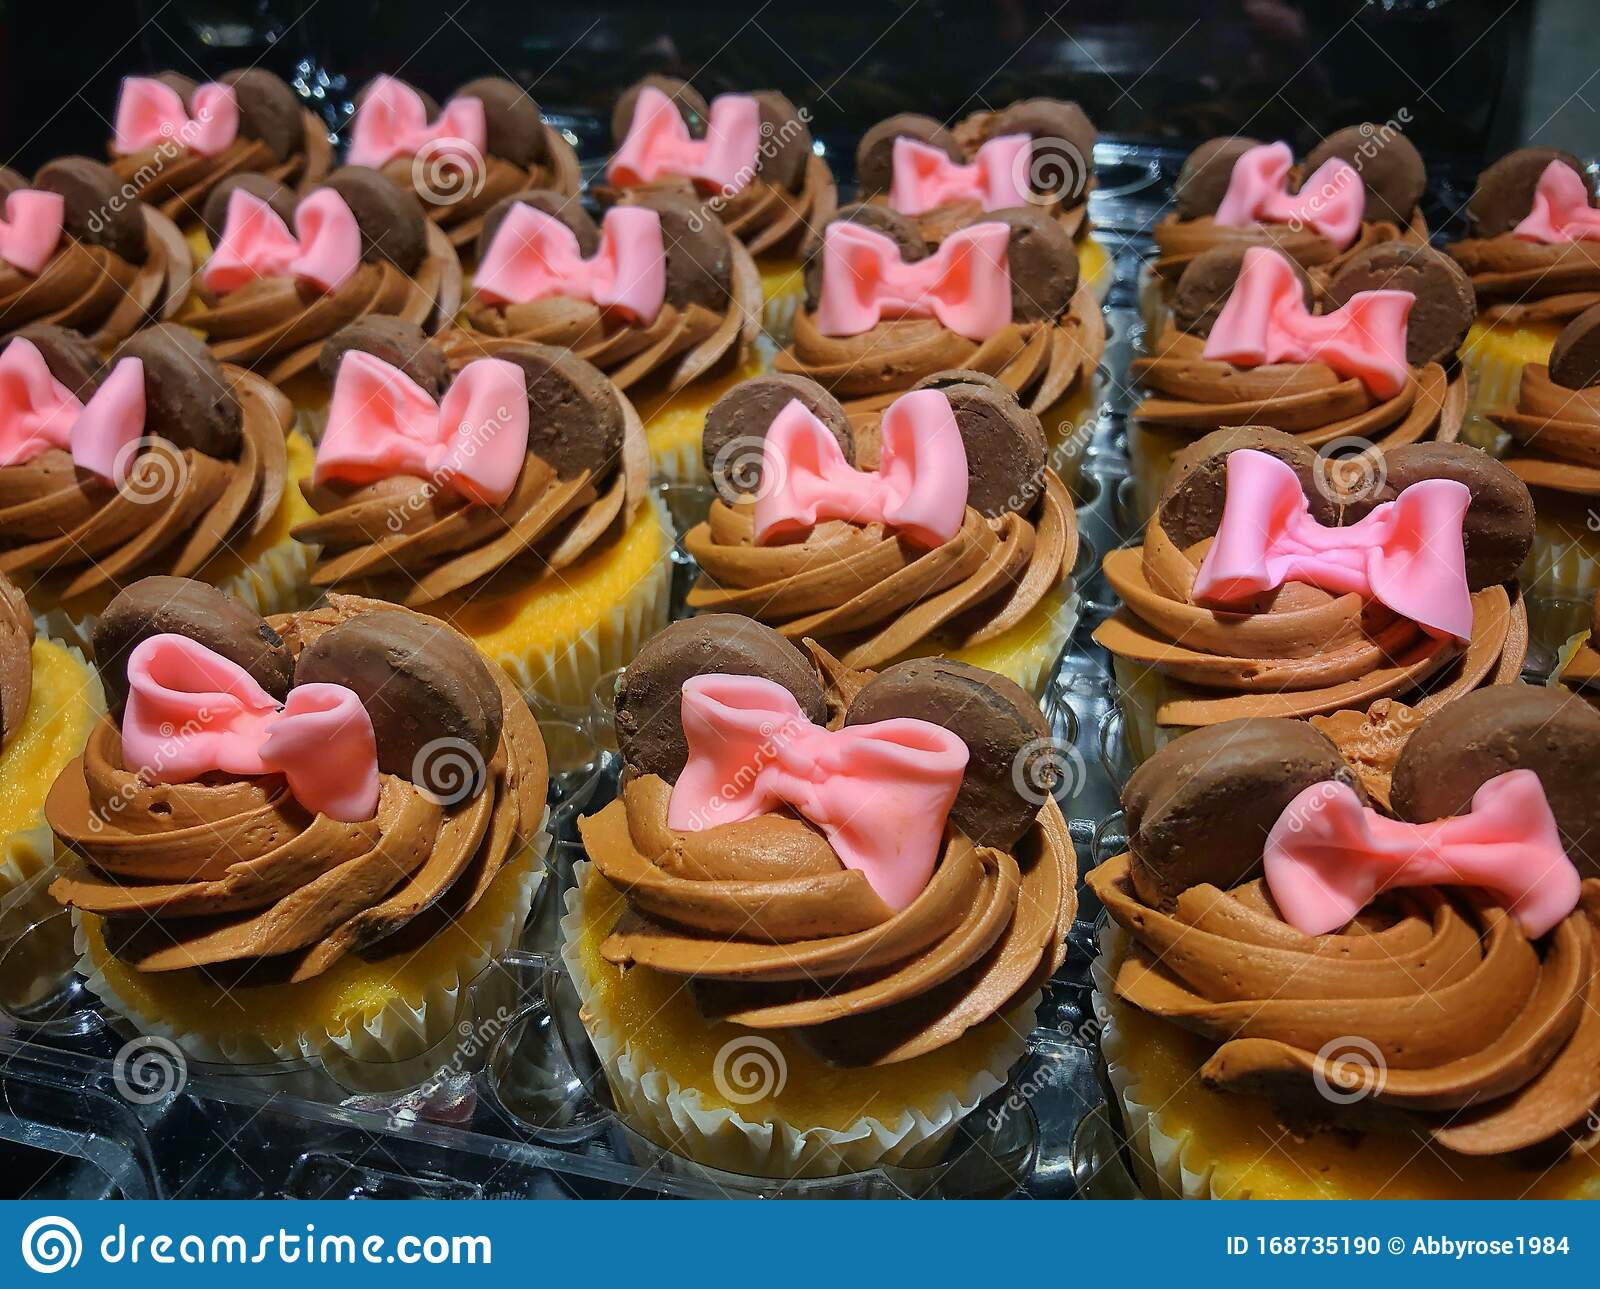 Fantastic Homemade Minnie Mouse Cupcakes Stock Photo Image Of Fondant Funny Birthday Cards Online Alyptdamsfinfo